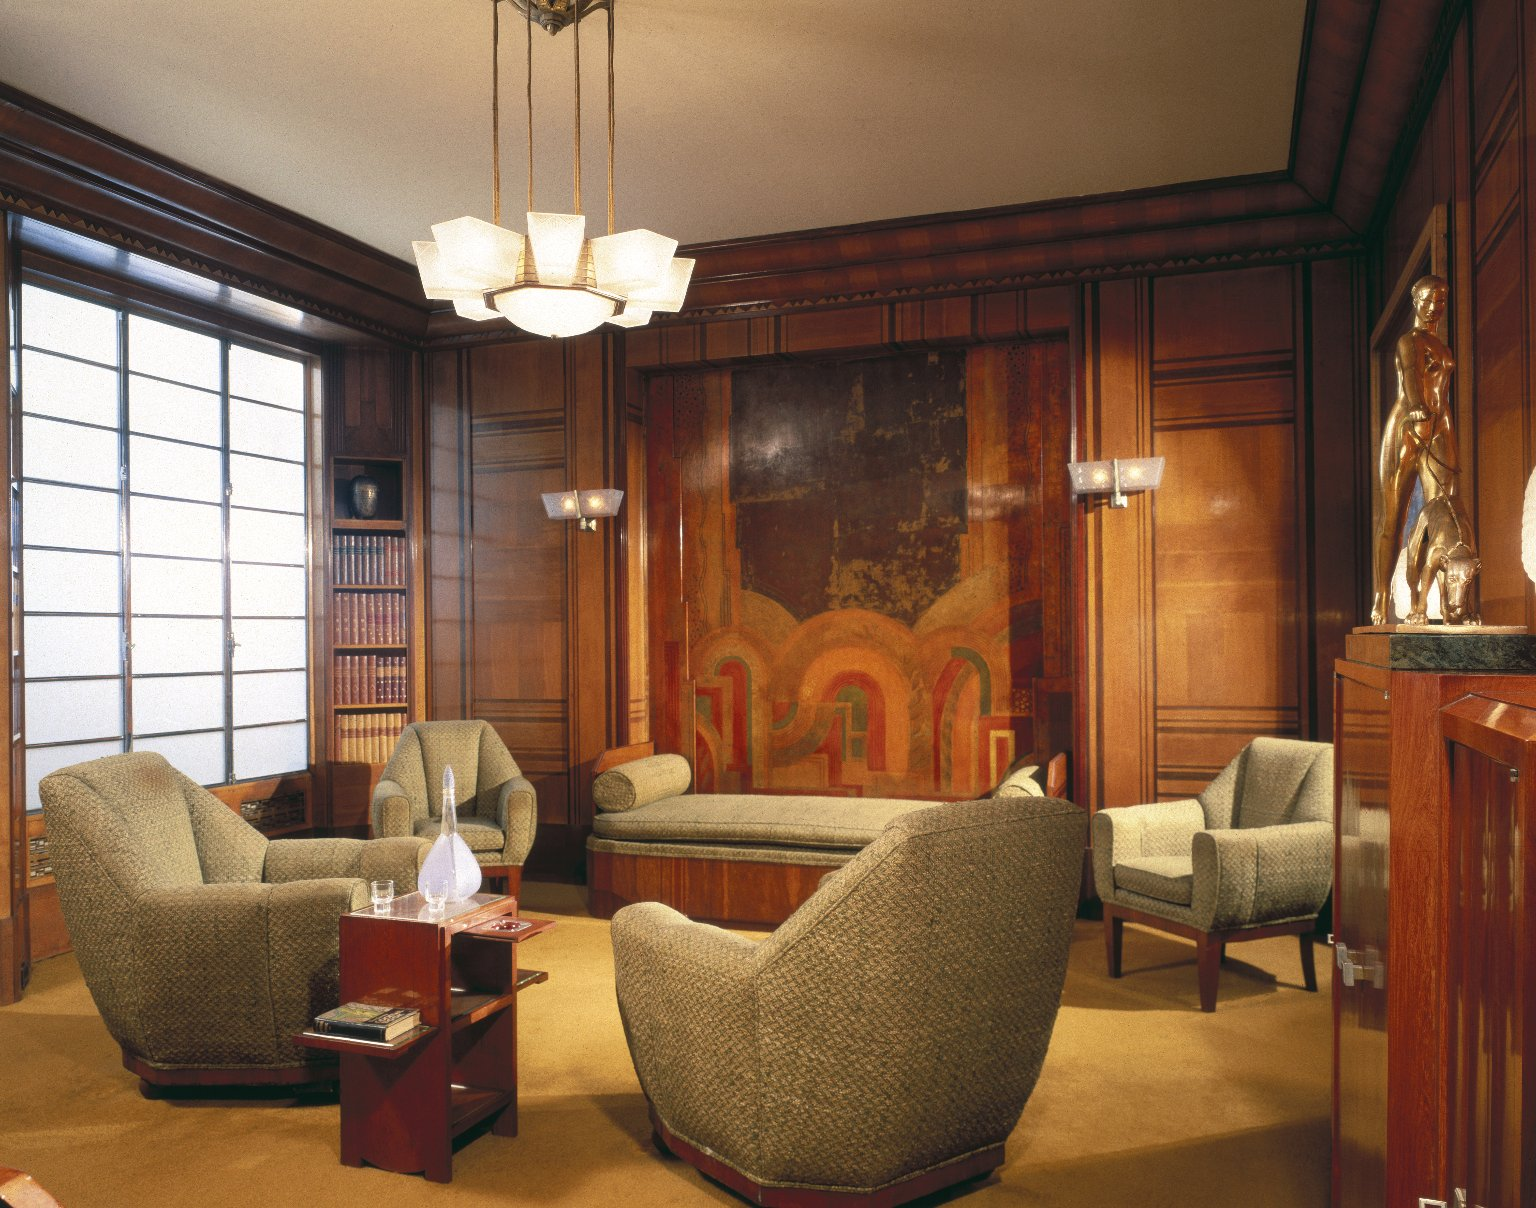 15 beautiful furniture collections at the world 39 s museums for Famous art deco interior design